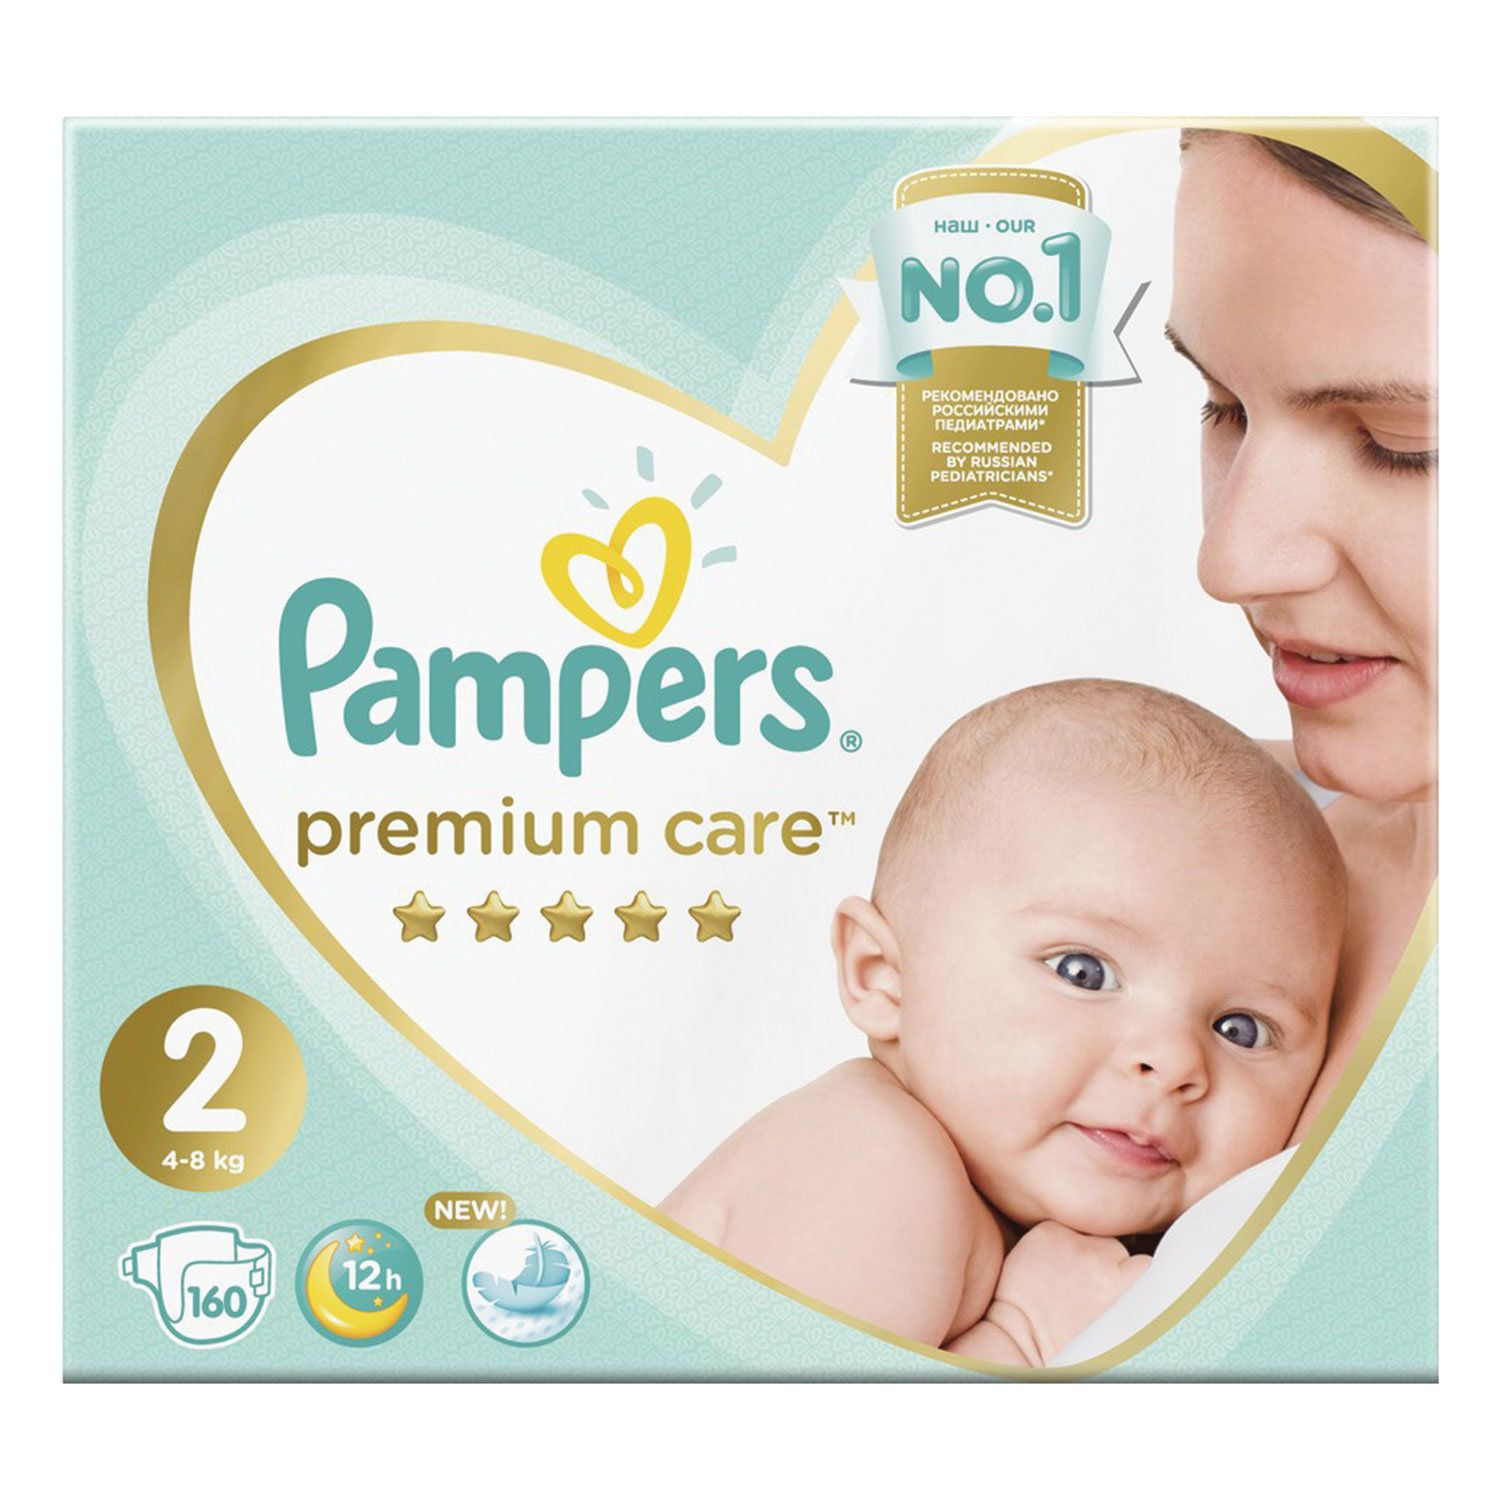 """PAMPERS / Diapers """"Premium Care New Baby"""", size 2 (4-8 kg), 160 pcs."""